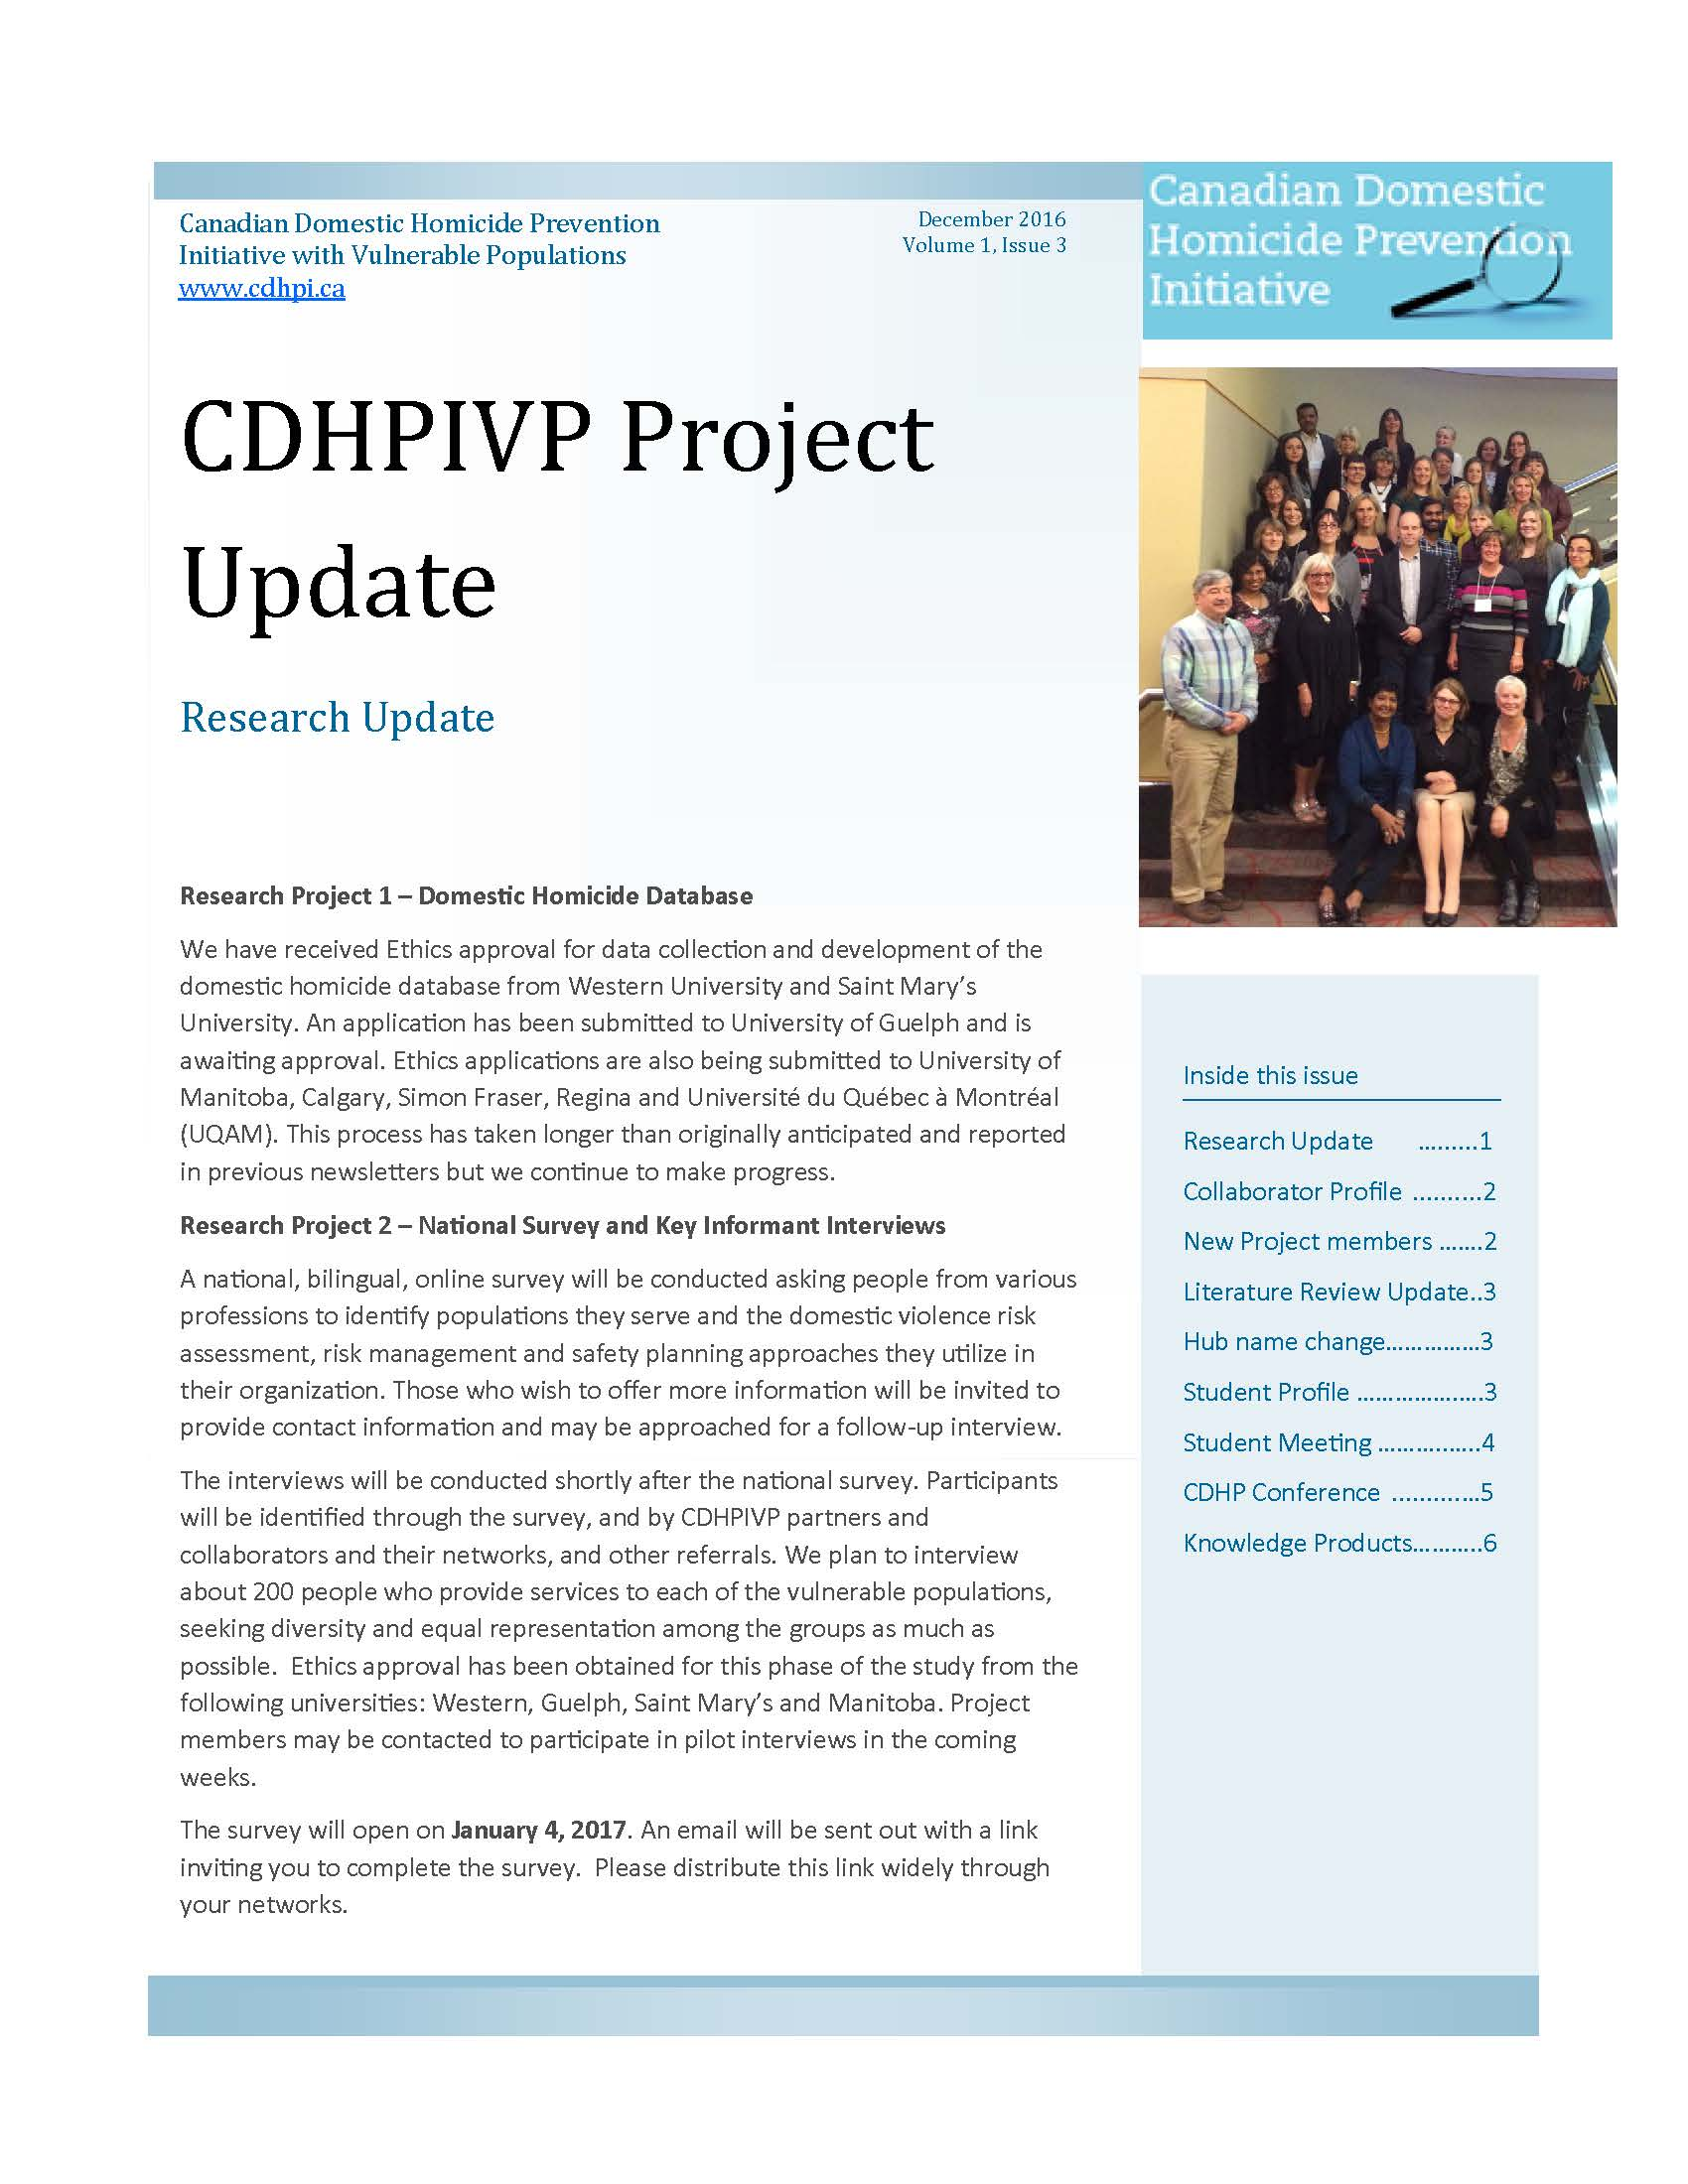 CDHPIVP Project Update: Volume 1, Newsletter 3 cover page